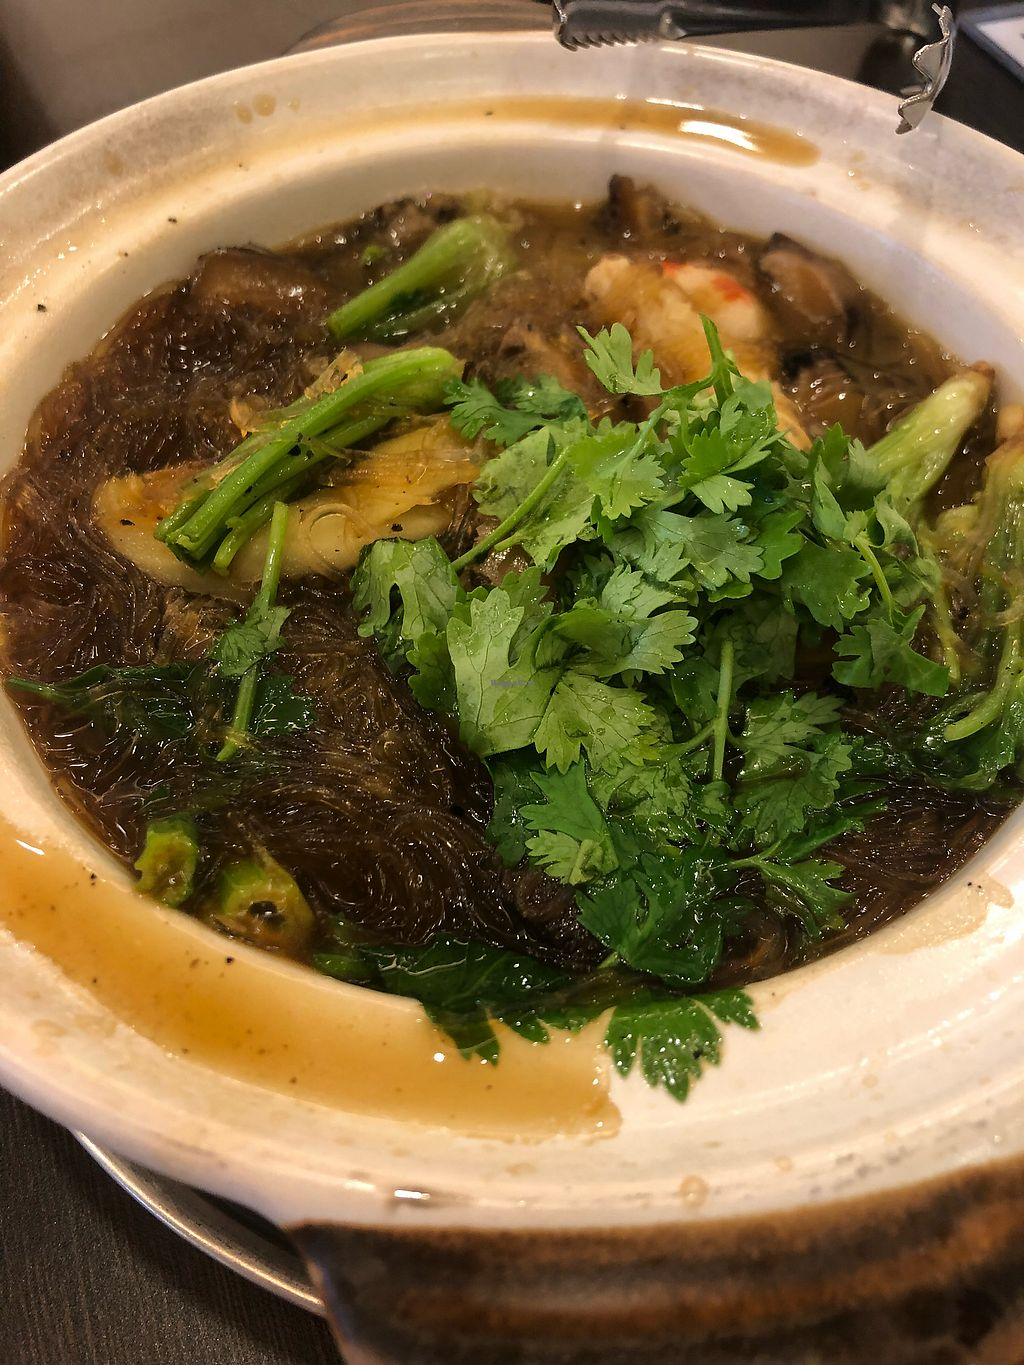 "Photo of Greenland Vegetarian Restaurant  by <a href=""/members/profile/AmyLeySzeThoo"">AmyLeySzeThoo</a> <br/>Claypot Tang Hoon <br/> April 10, 2018  - <a href='/contact/abuse/image/196/383108'>Report</a>"